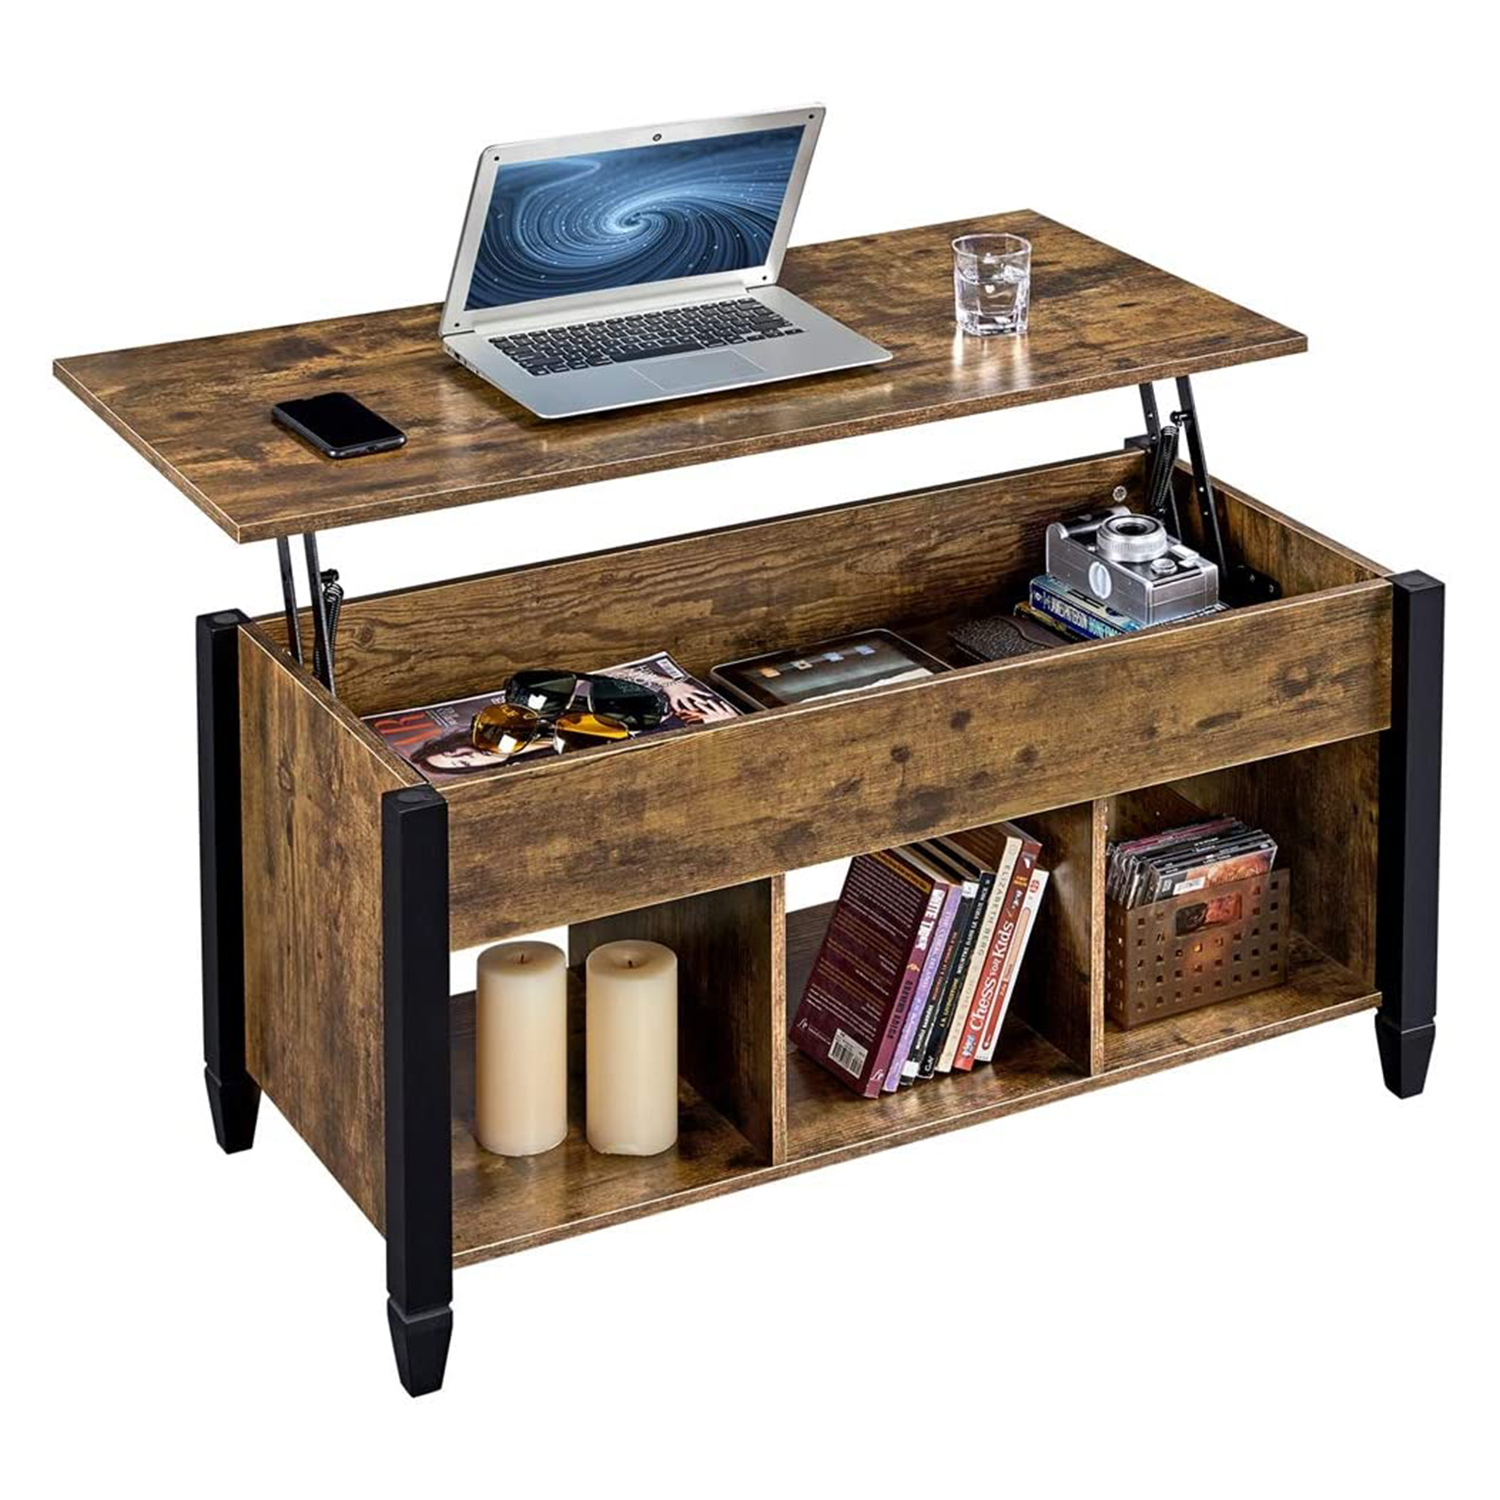 YAHEETECH Minimalist Wooden Lift Top Coffee Table w/Hidden Storage Compartment